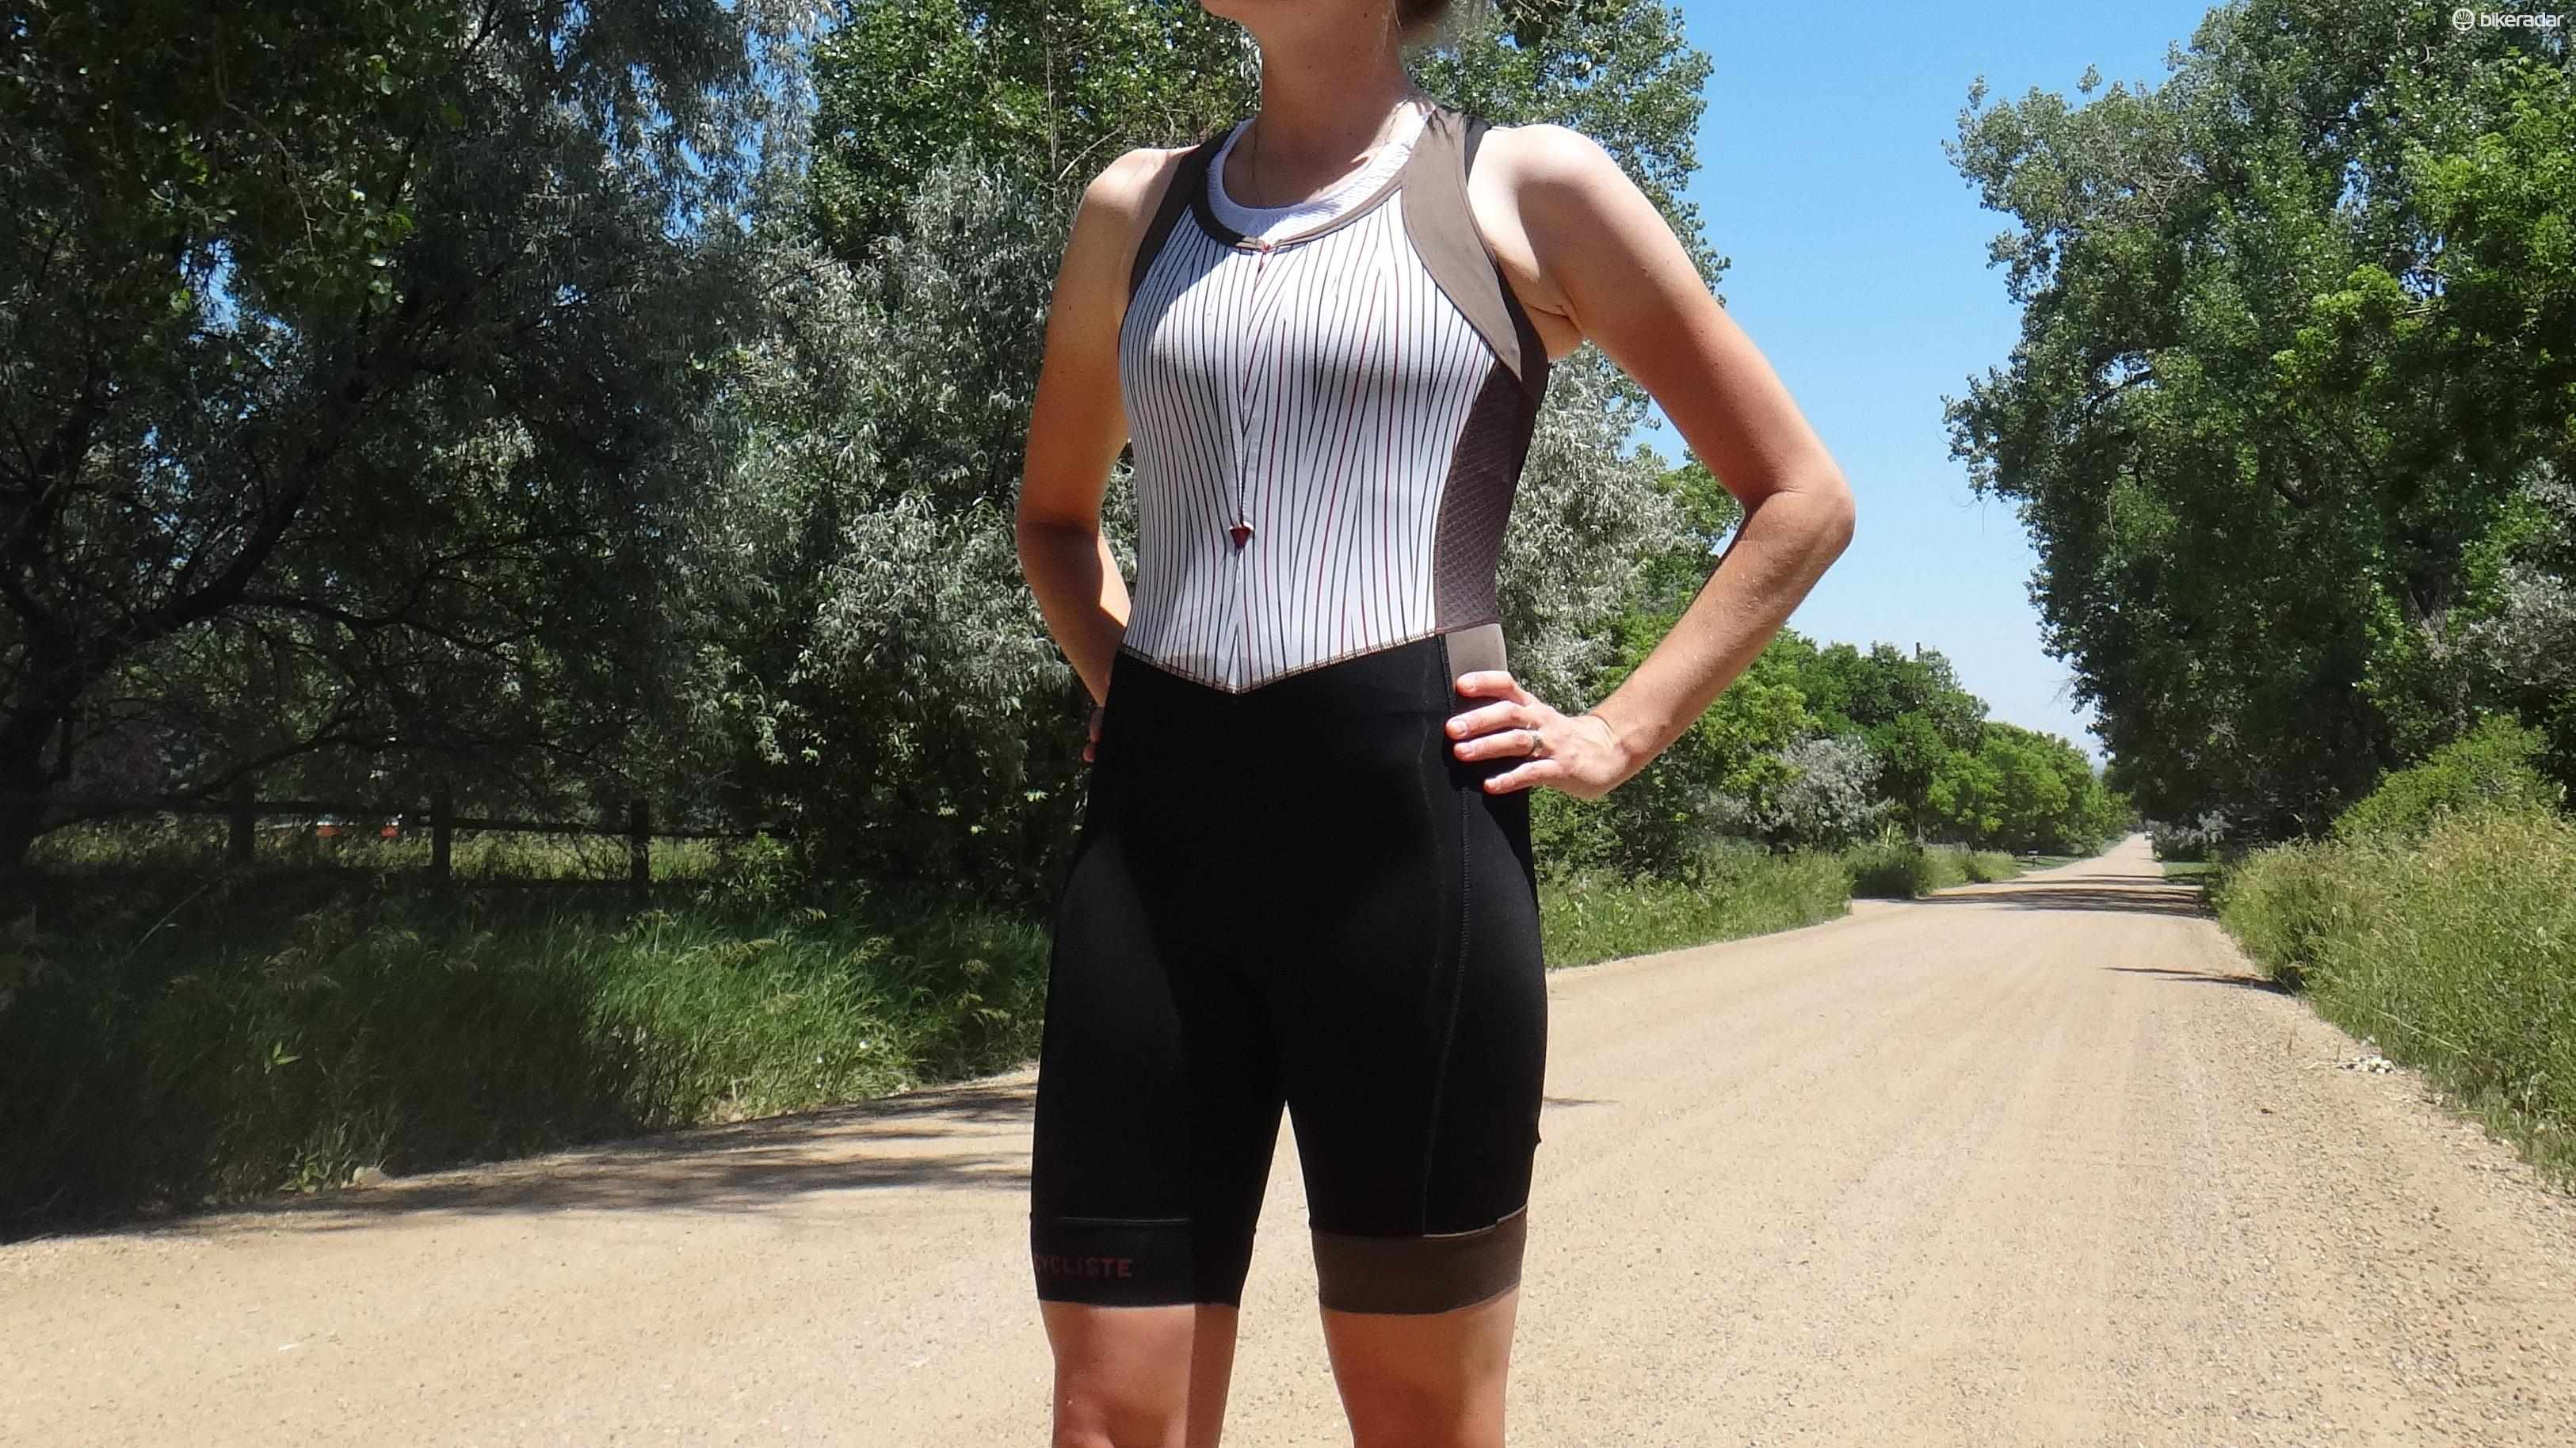 Café du Cycliste's Antoinette Bibs earned style points for the striped built-in base layer